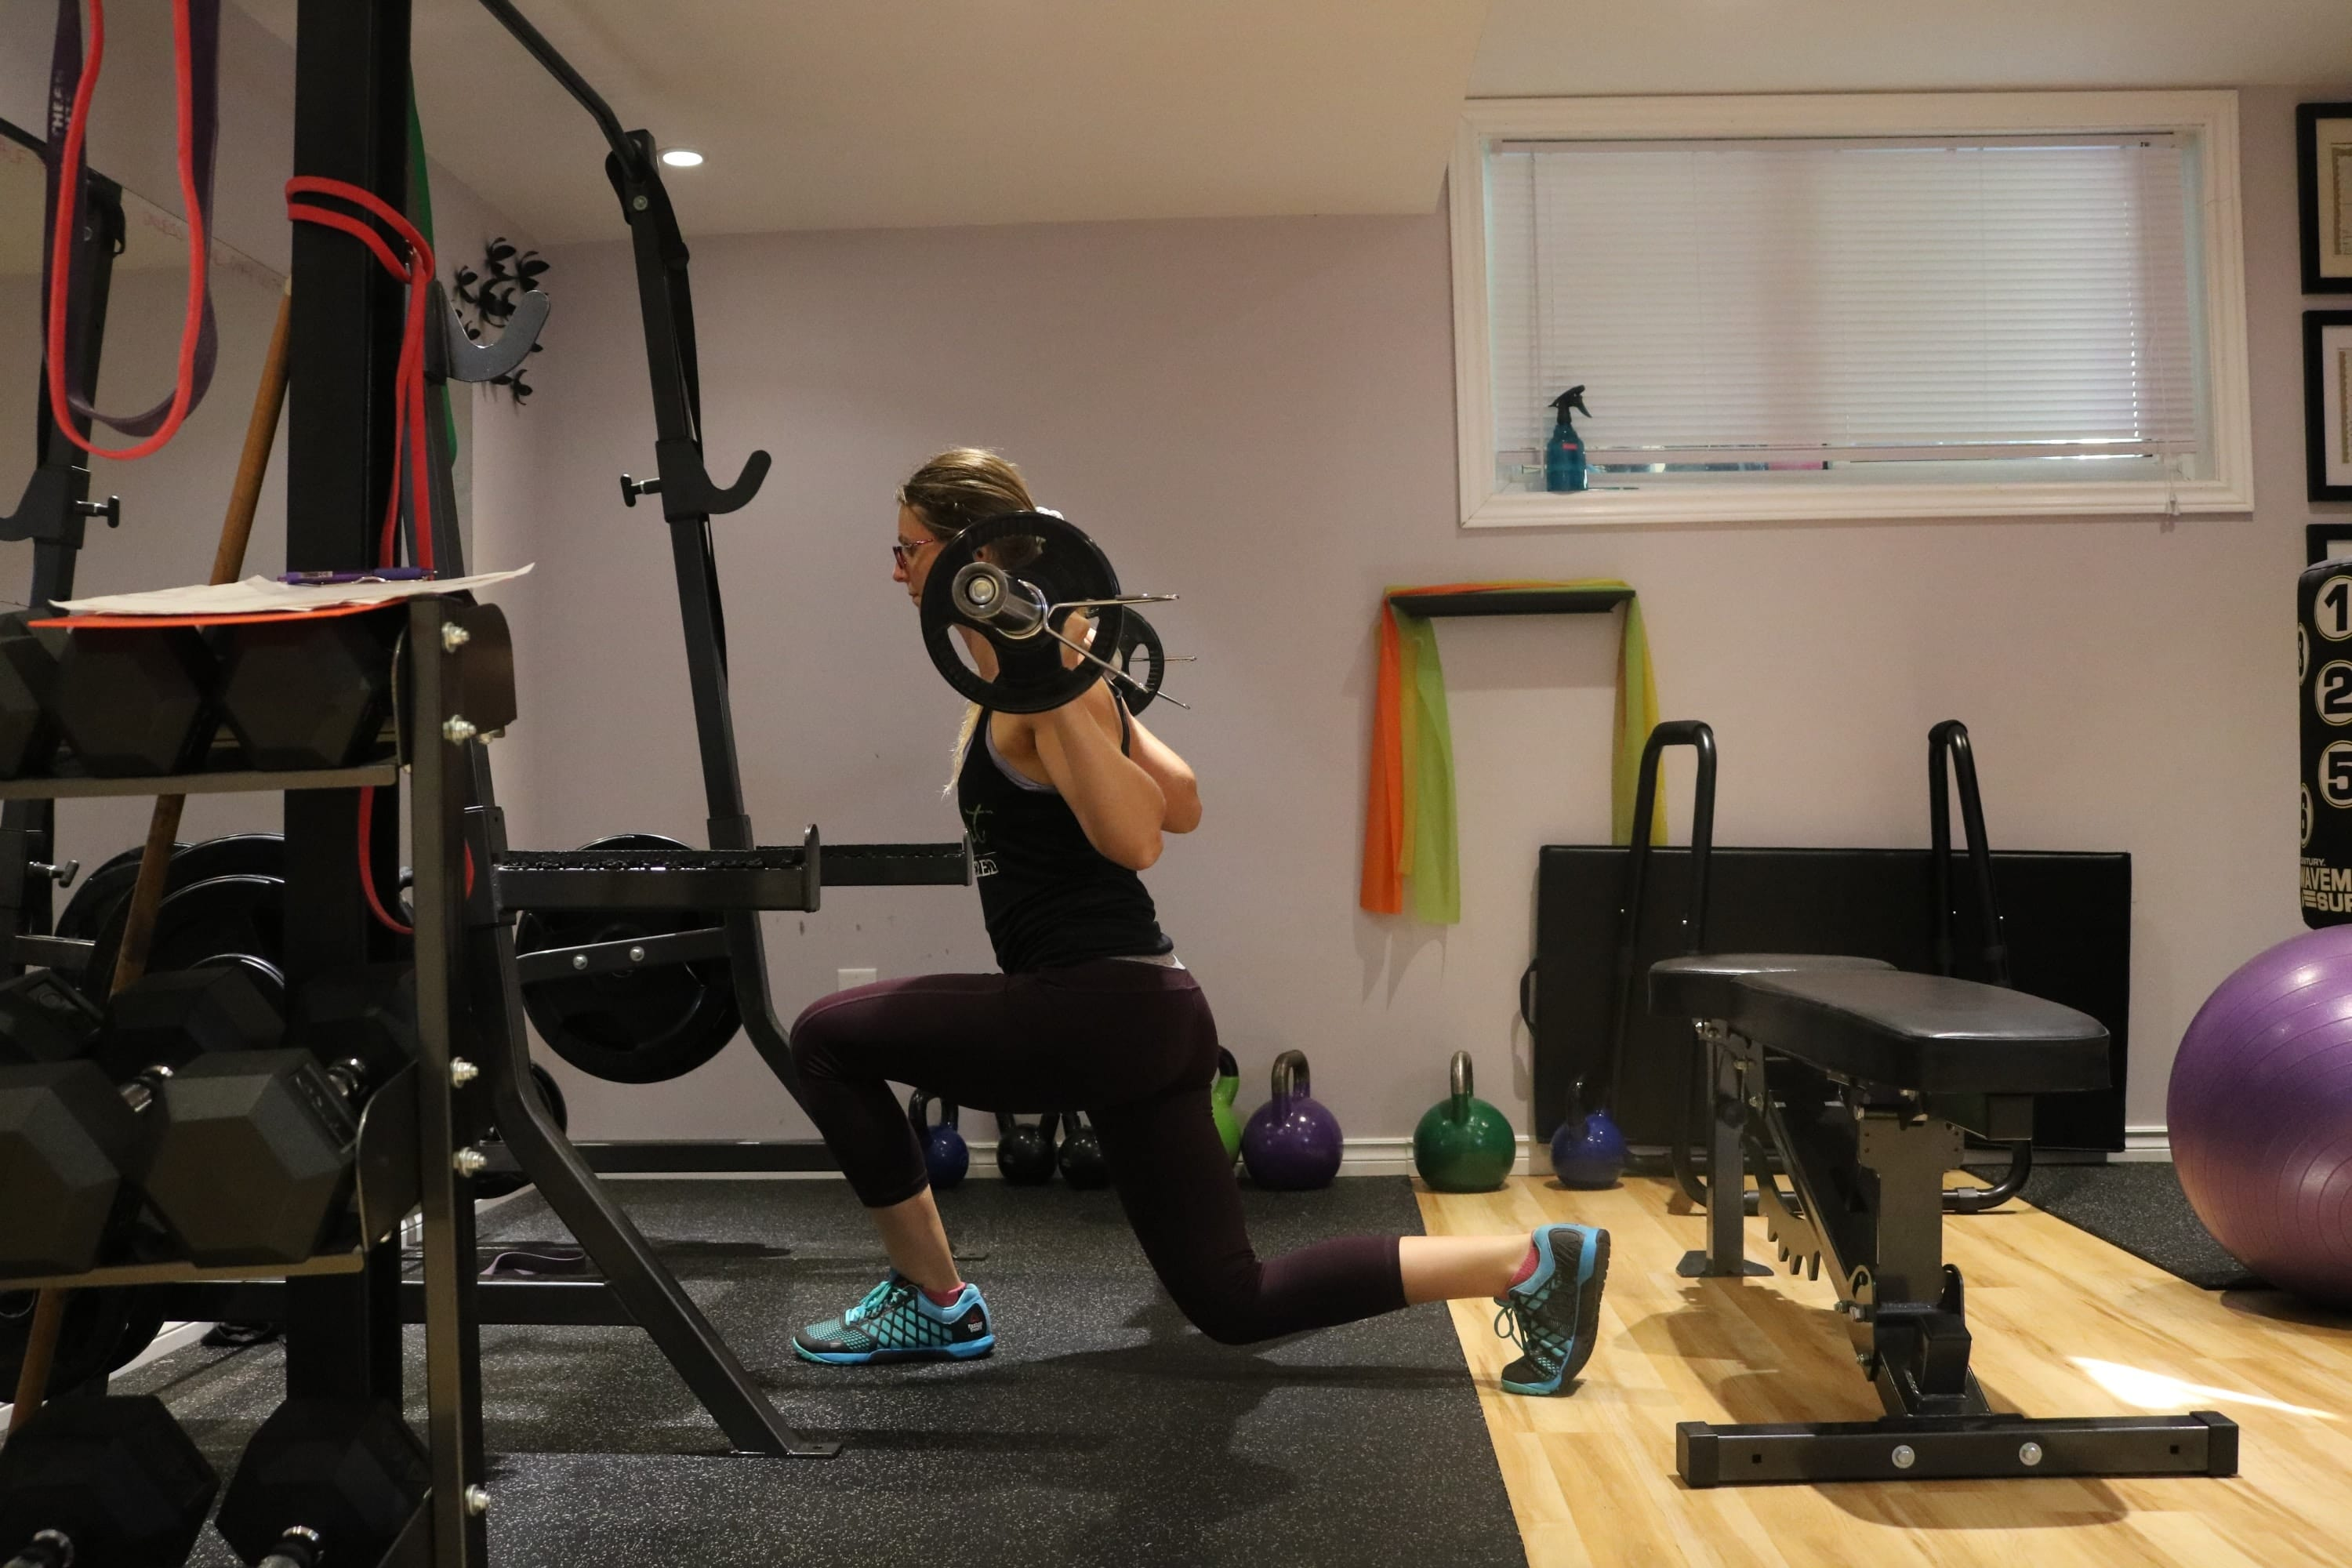 Lady n black shirt and pants performing a barbell lunge in a gym